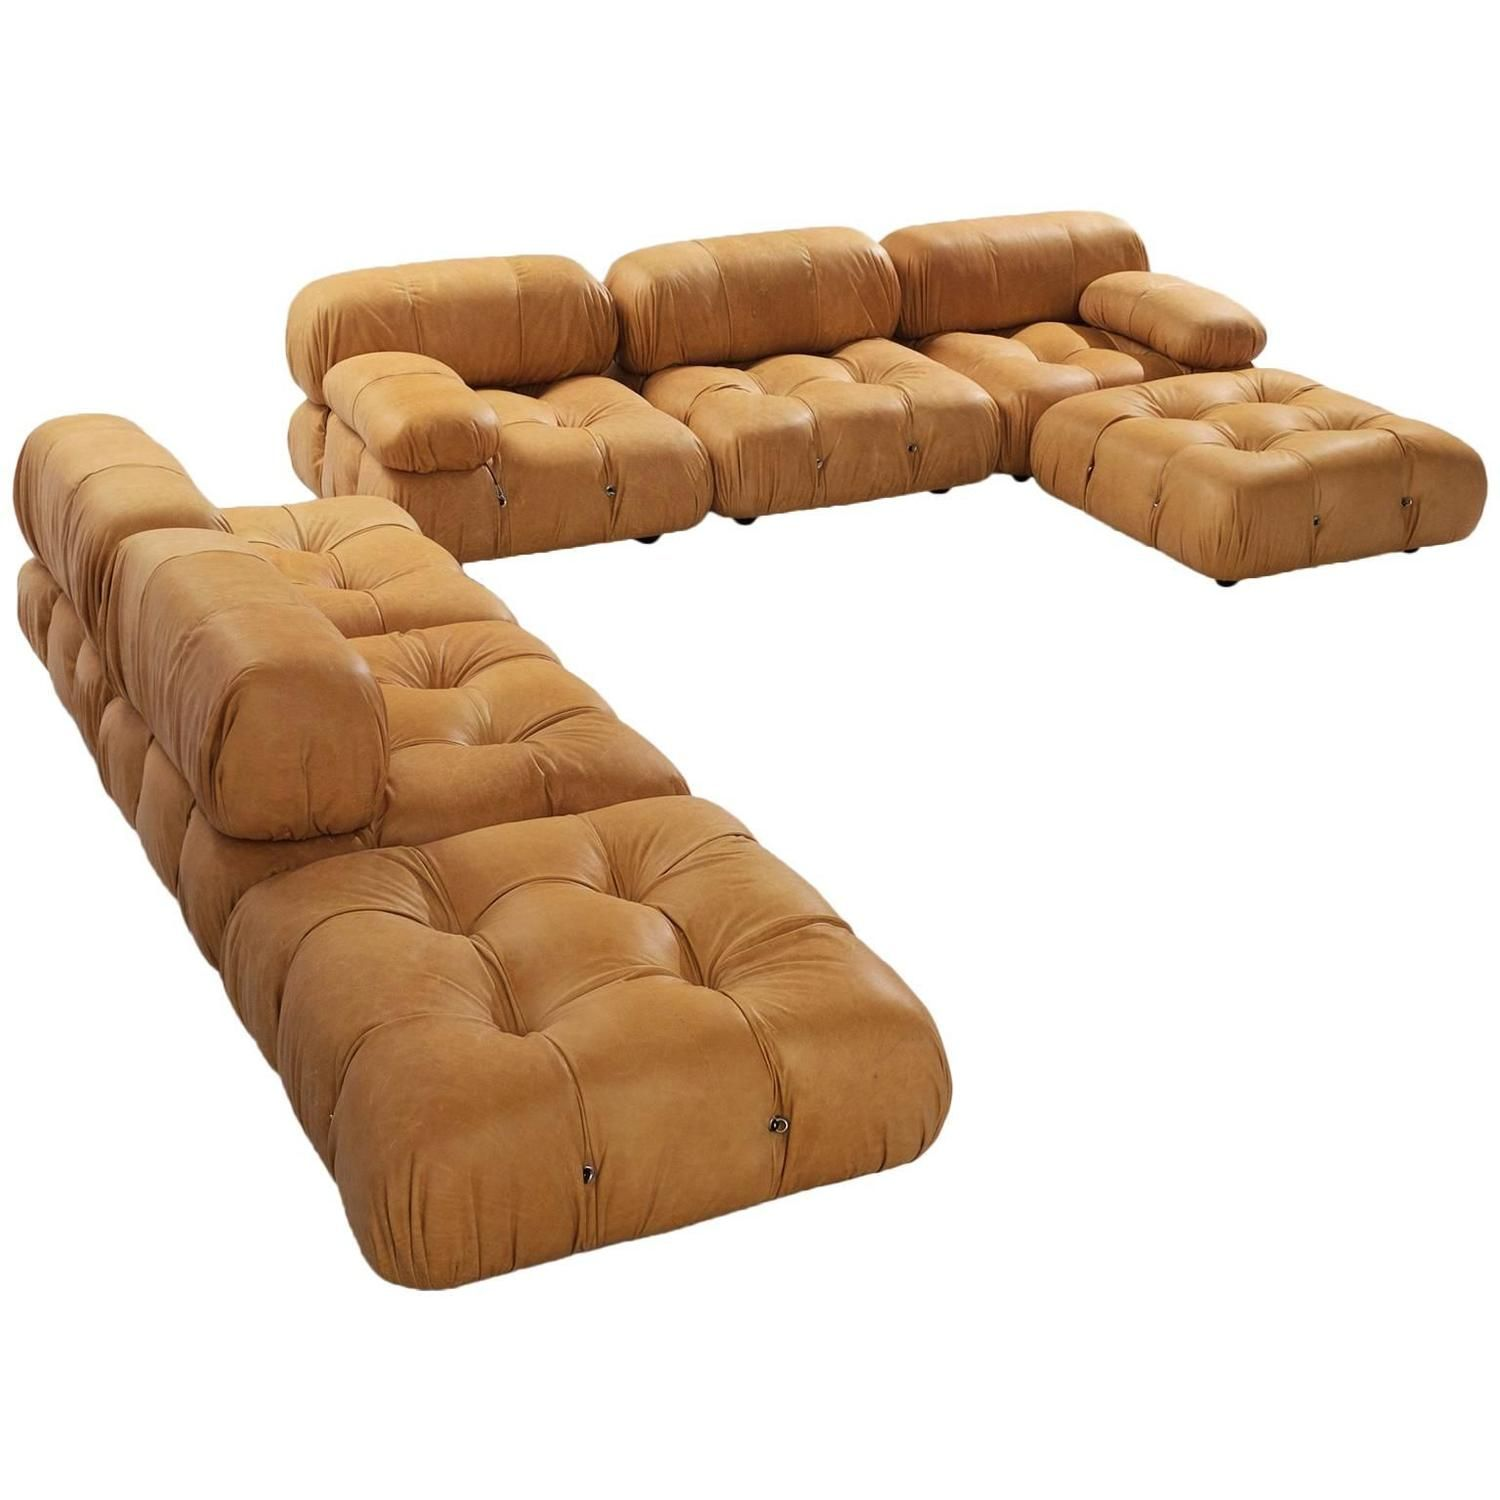 Mario Bellini Reupholstered Camaleonda Sectional Sofa in Cognac